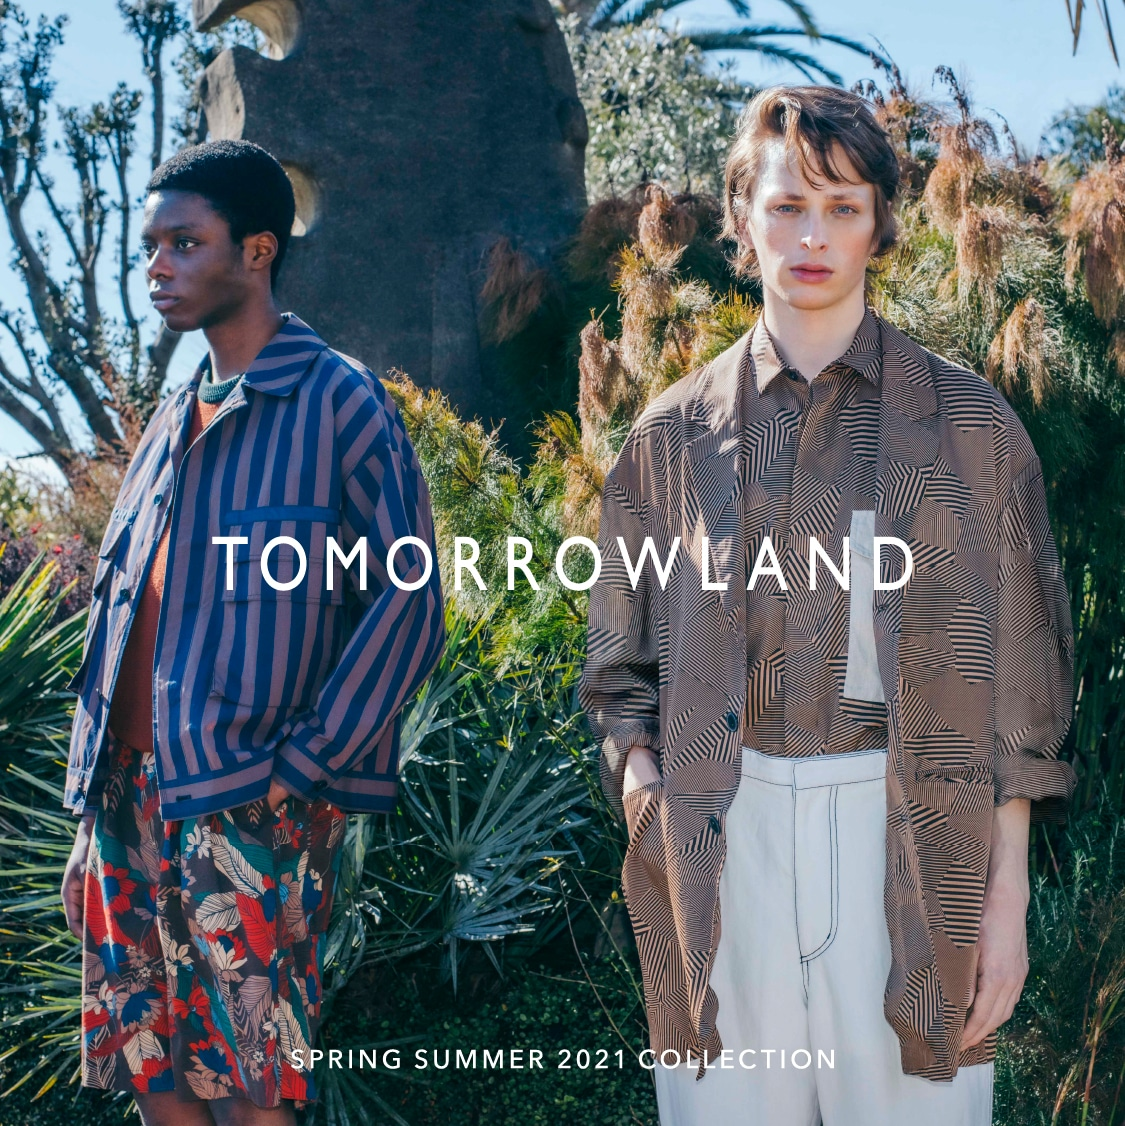 SPRING SUMMER 2021 TOMORROWLAND COLLECTION